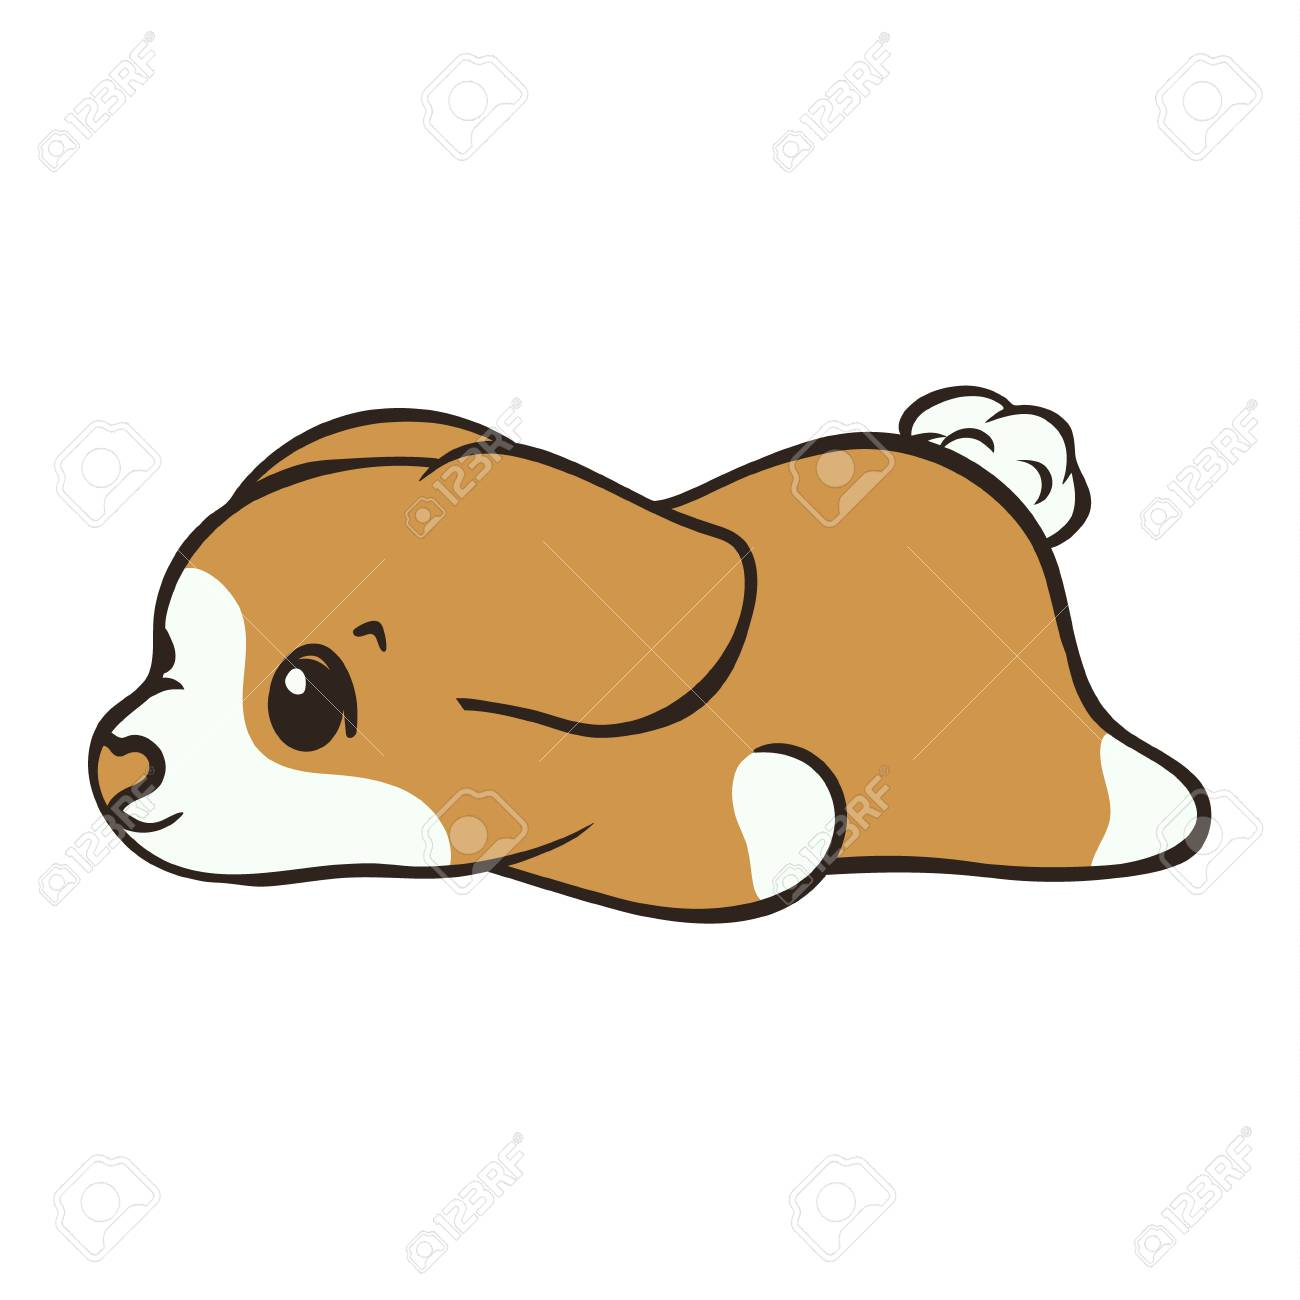 Welsh Corgi Dog Breed Vector Illustration Cute Puppy Lying Down Royalty Free Cliparts Vectors And Stock Illustration Image 121868713